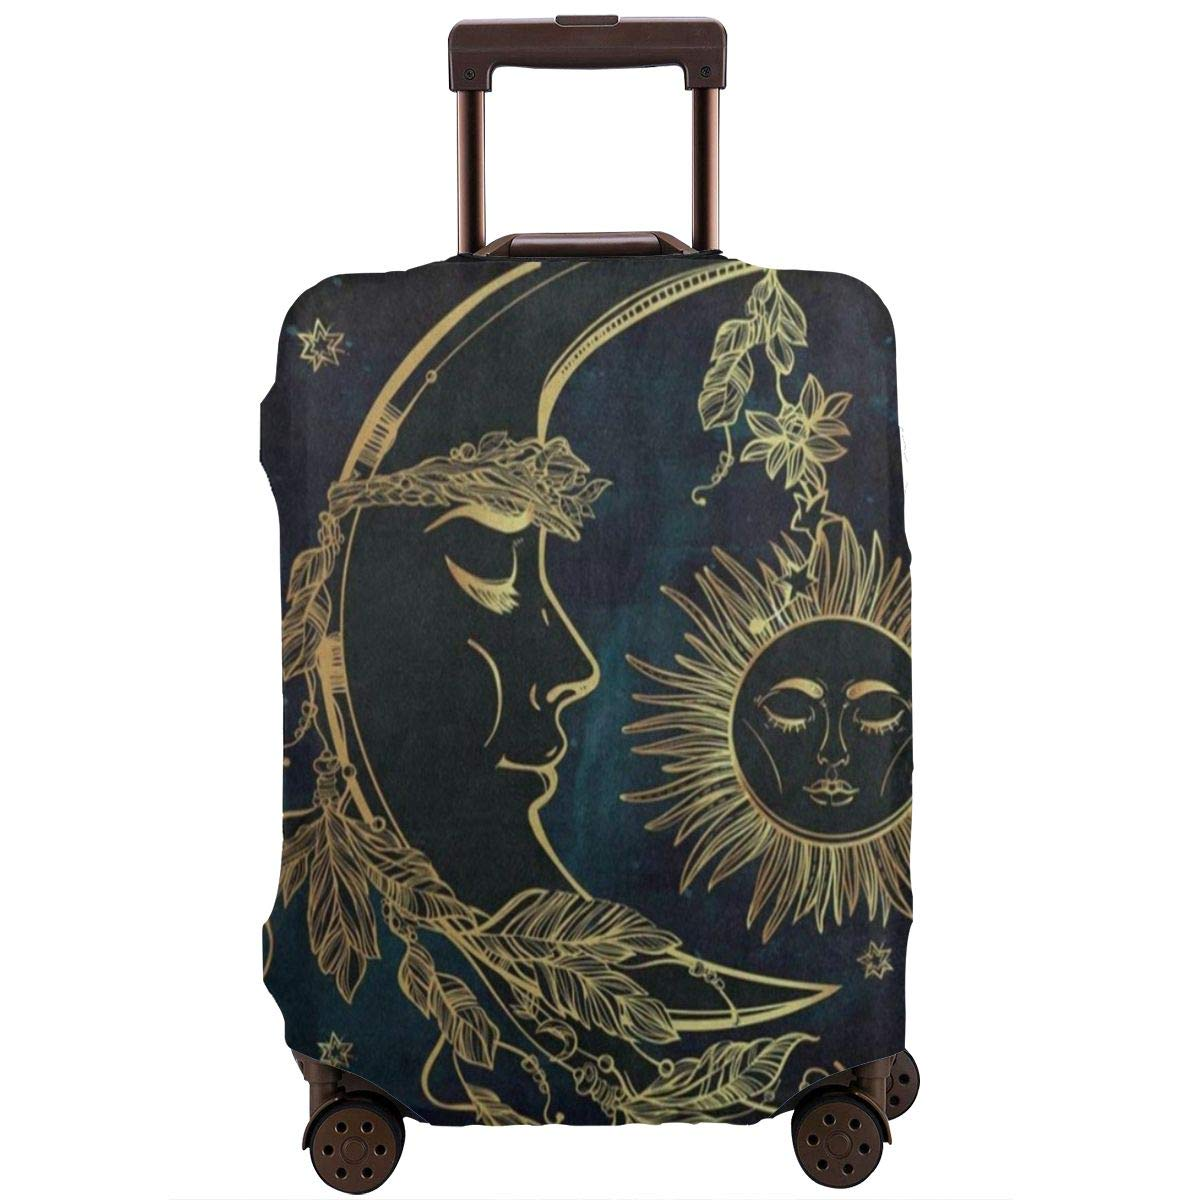 GIOVANIOR Night Mermaid Luggage Cover Suitcase Protector Carry On Covers